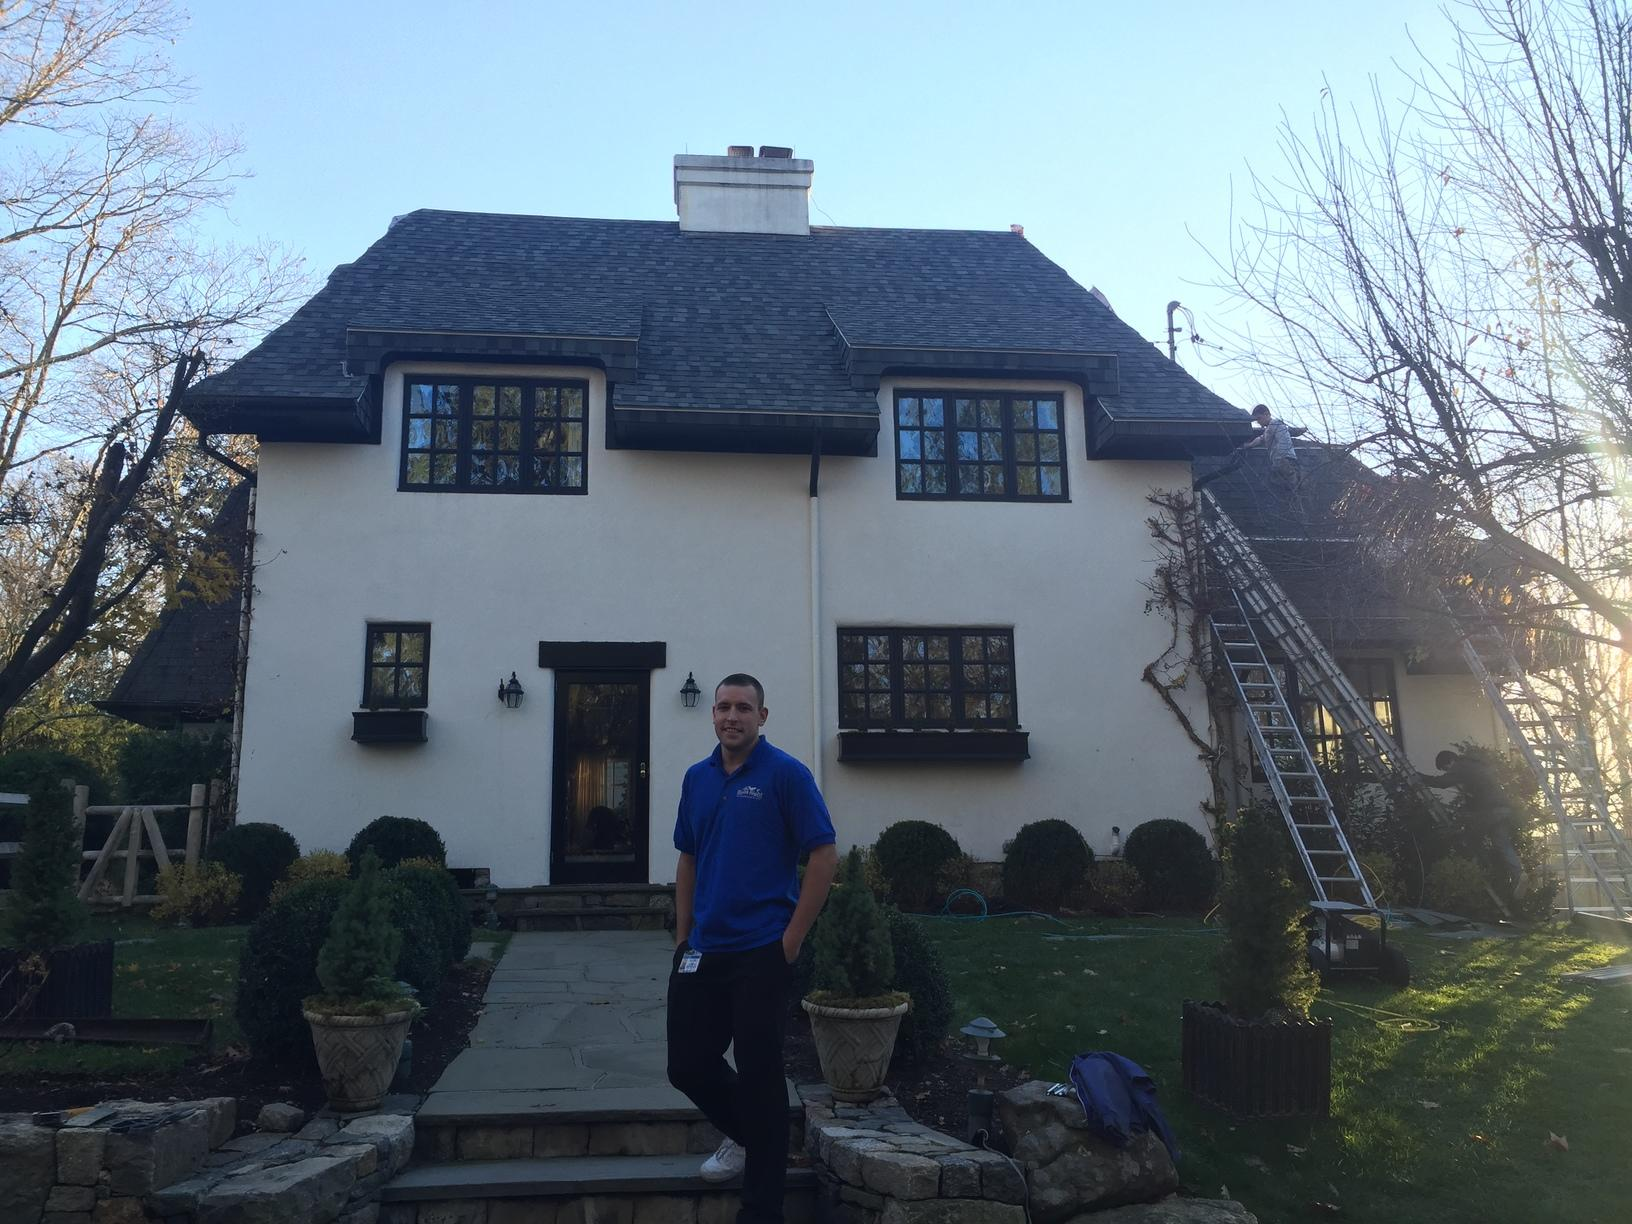 Greenwich, CT Wind Damage Roof Replacement and Restoration - After Photo